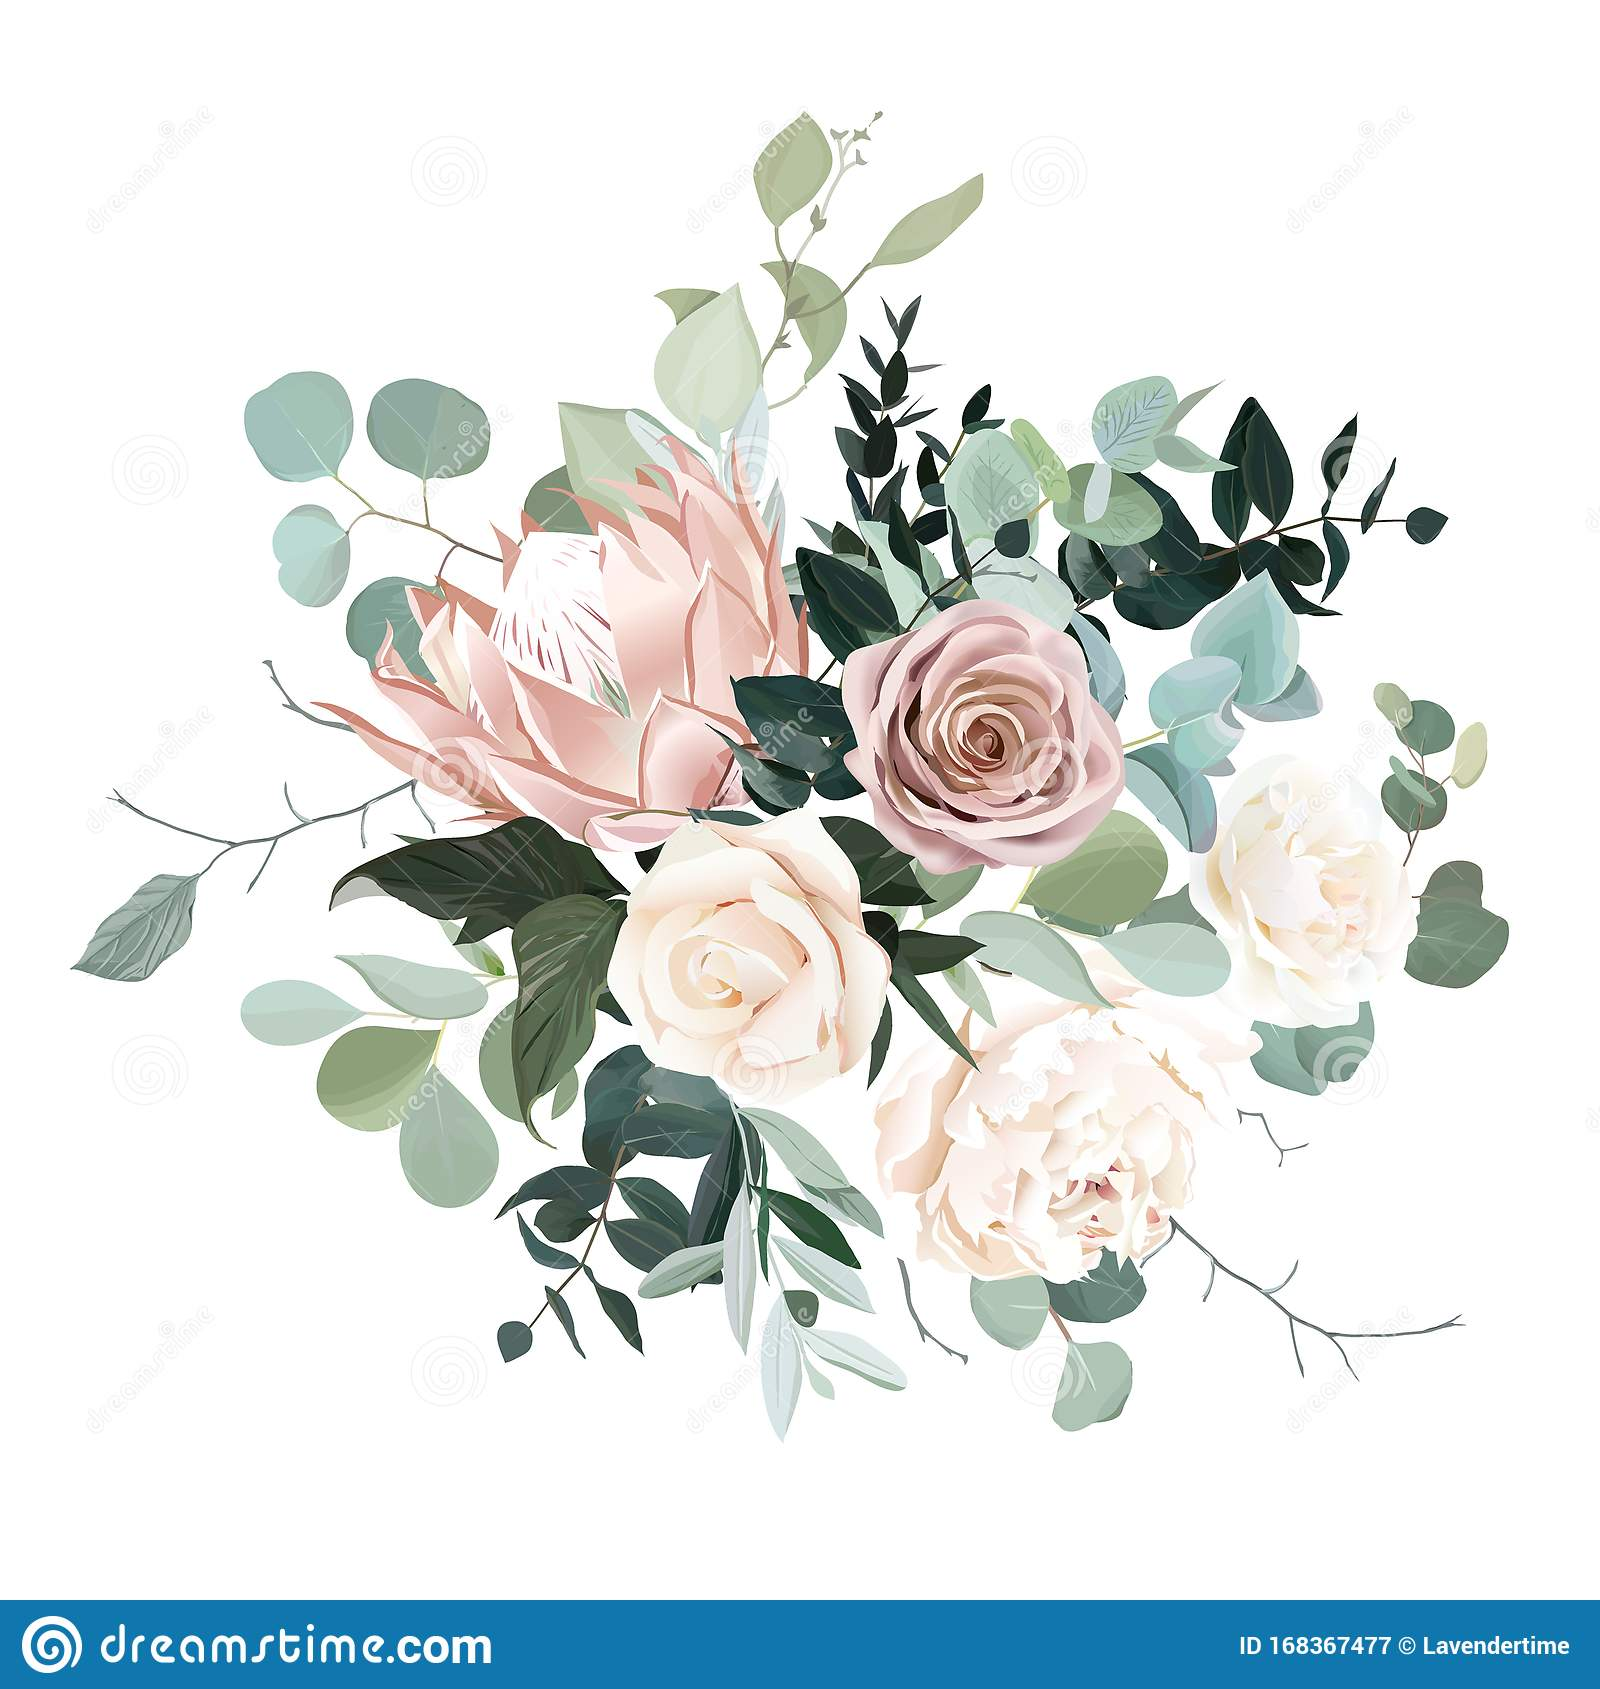 Silver Sage And Blush Pink Flowers Vector Design Bouquet Stock Vector Illustration Of Floral Blossom 168367477